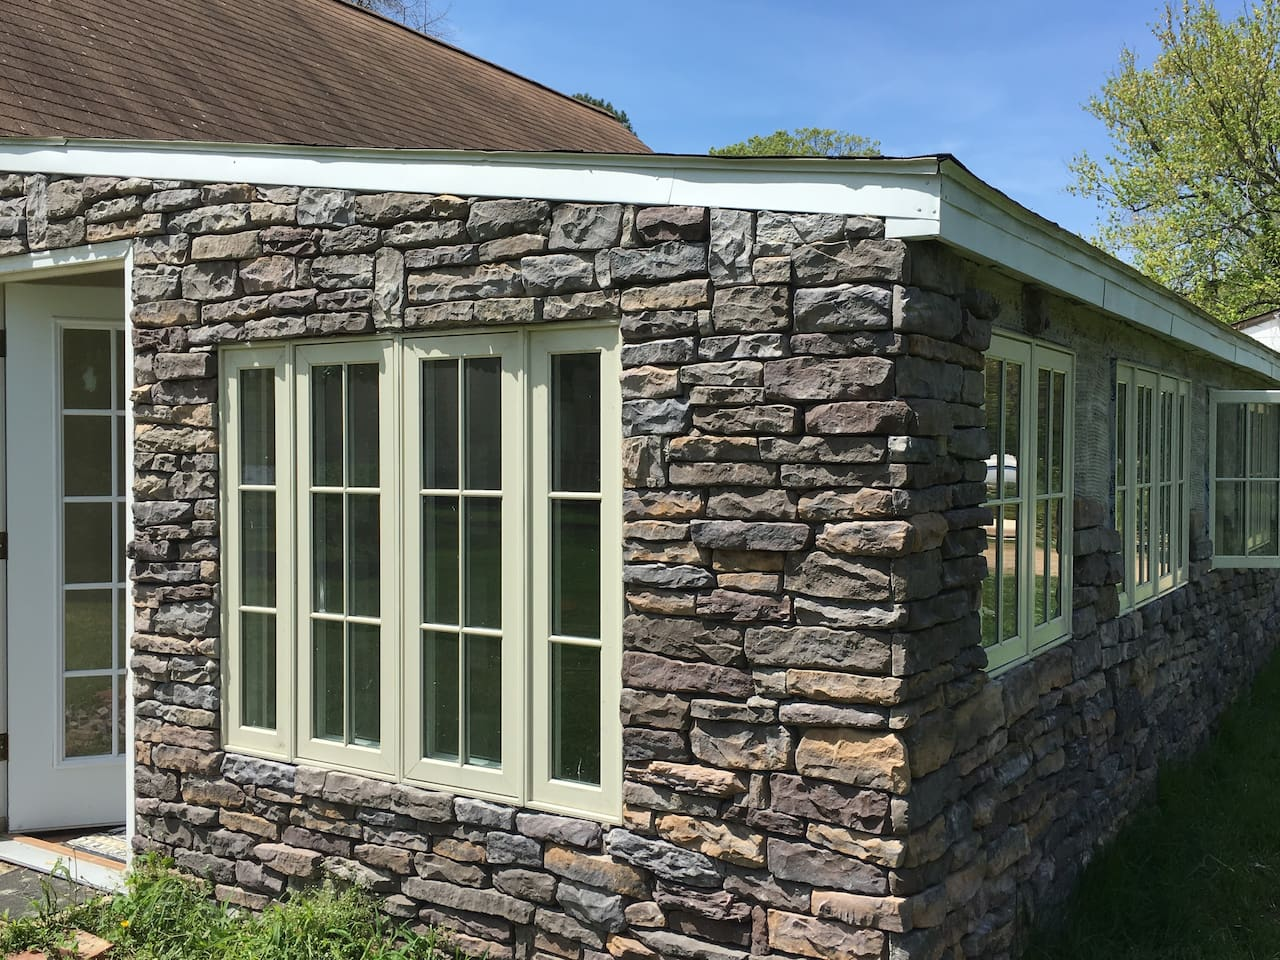 Exterior of the Stone-covered Carriage House